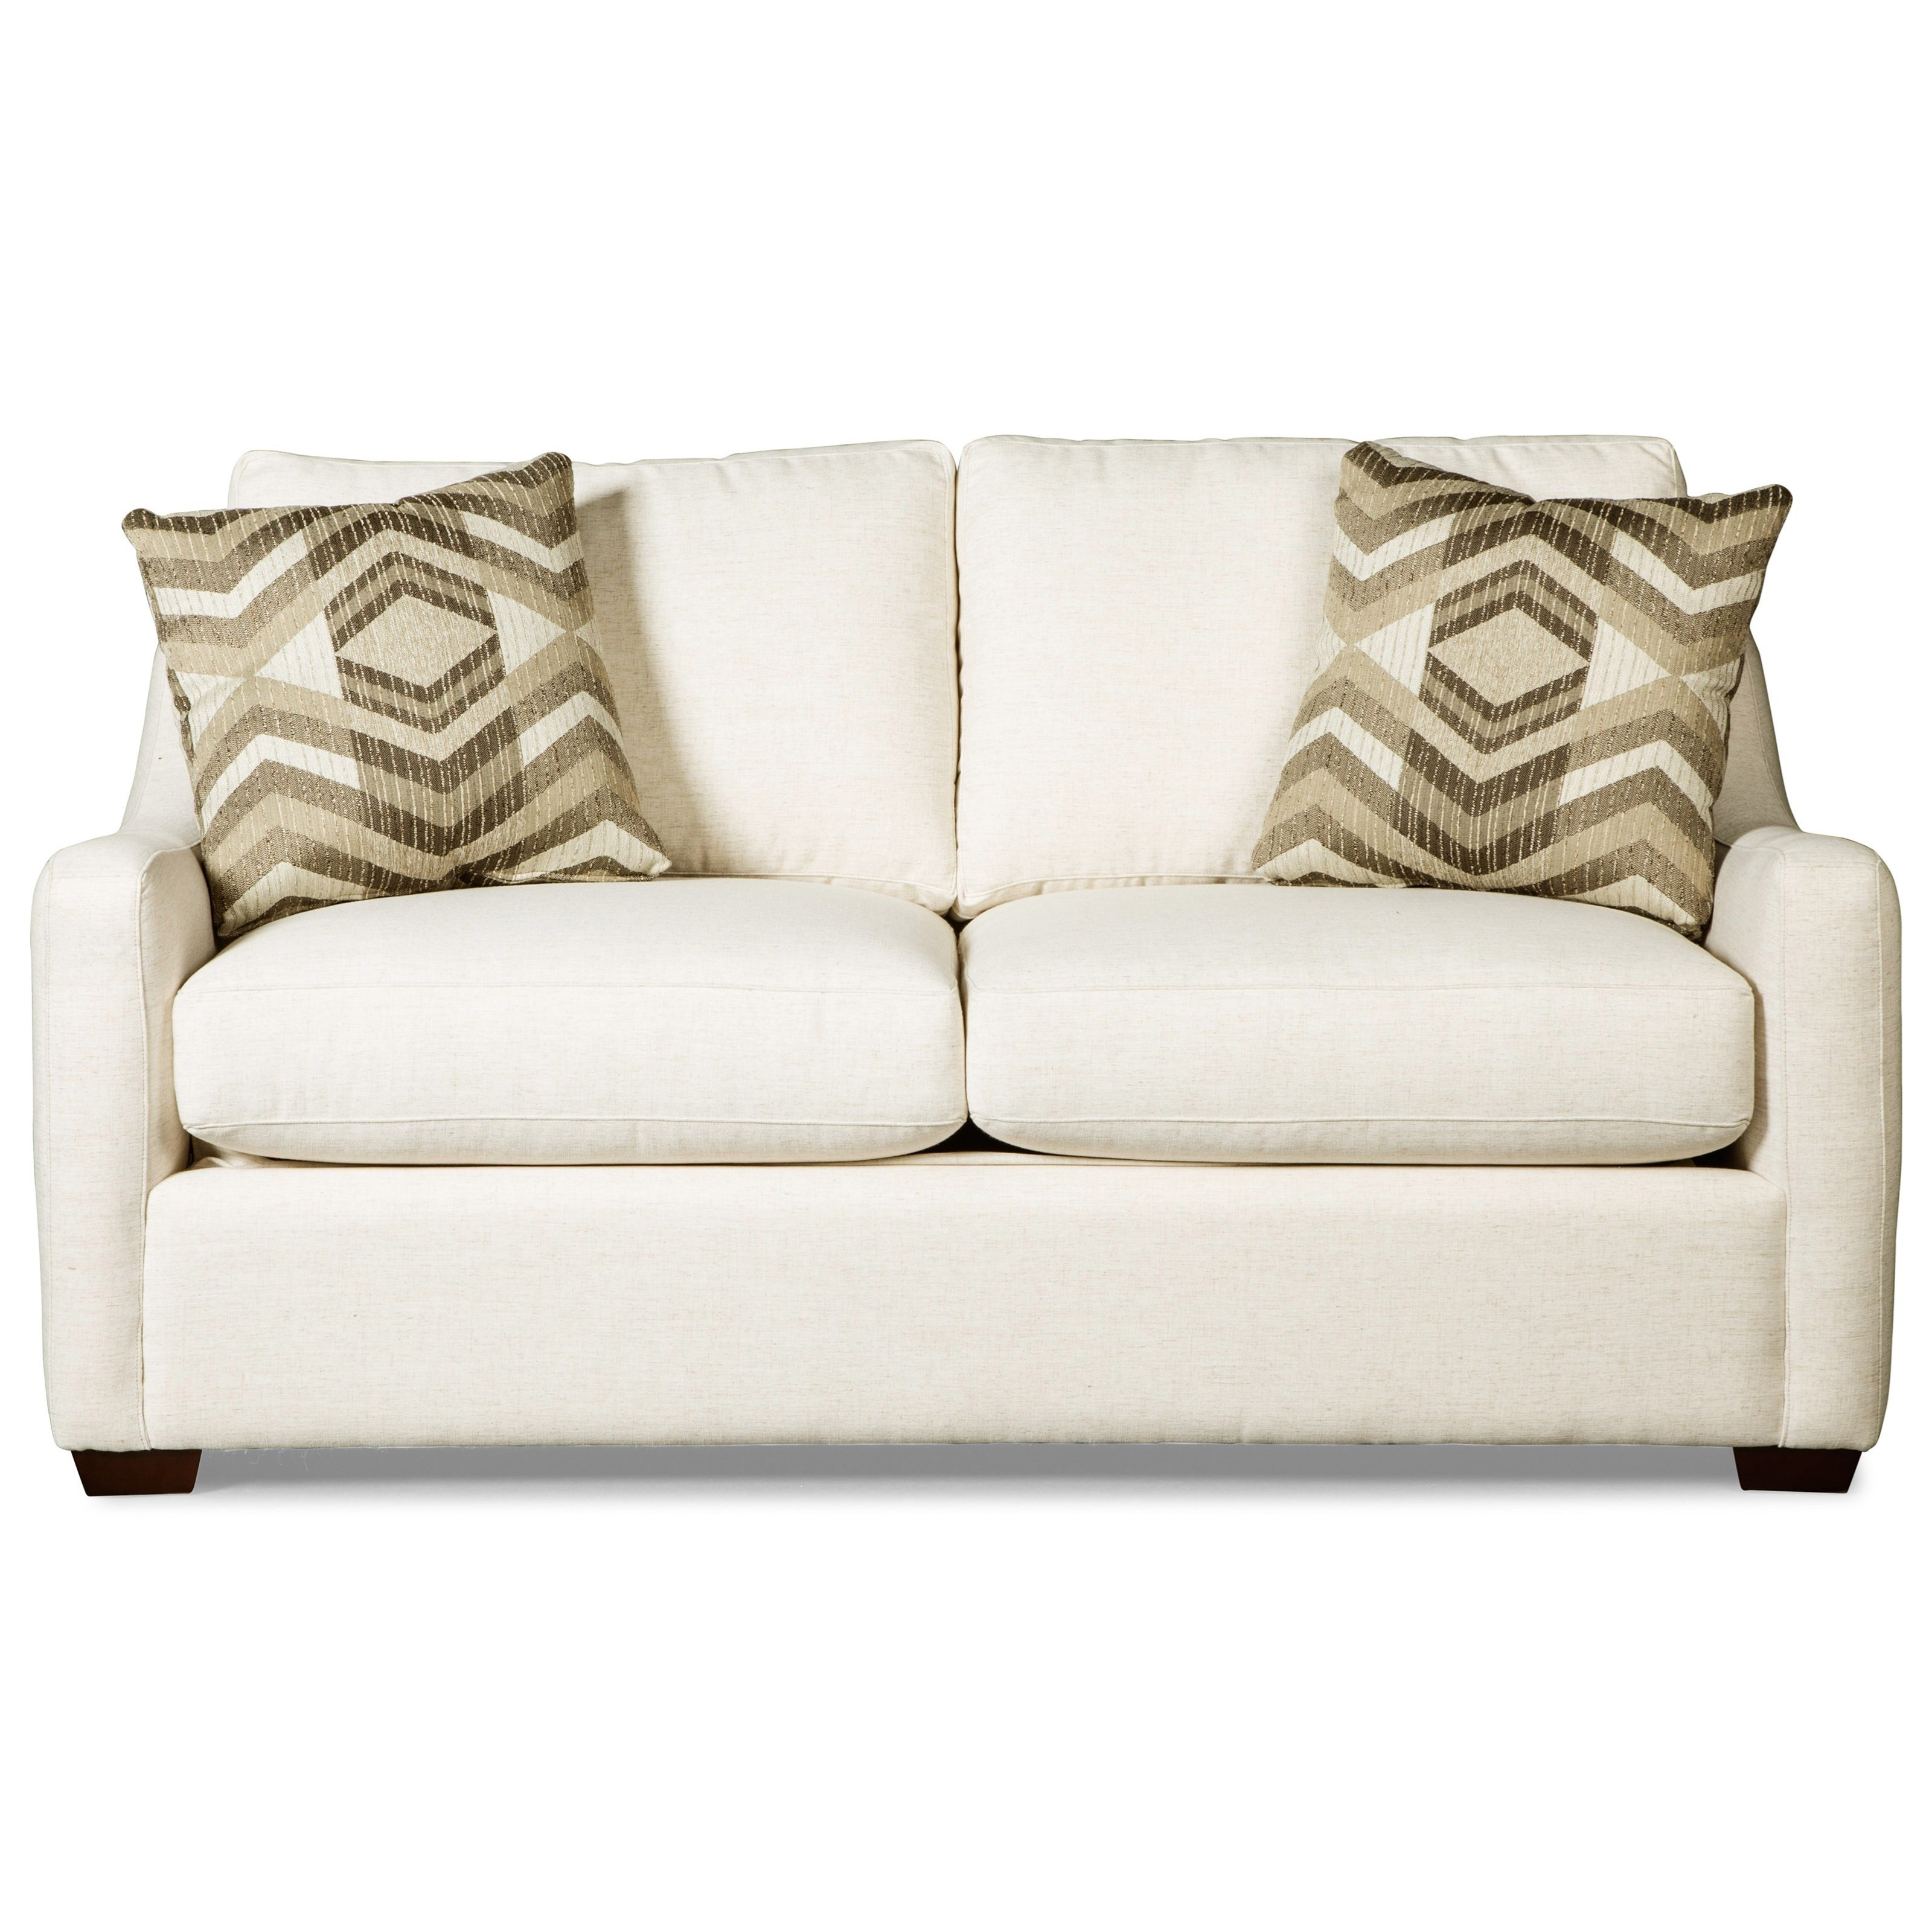 Hickory Craft 7643 Full Size Sleeper Sofa